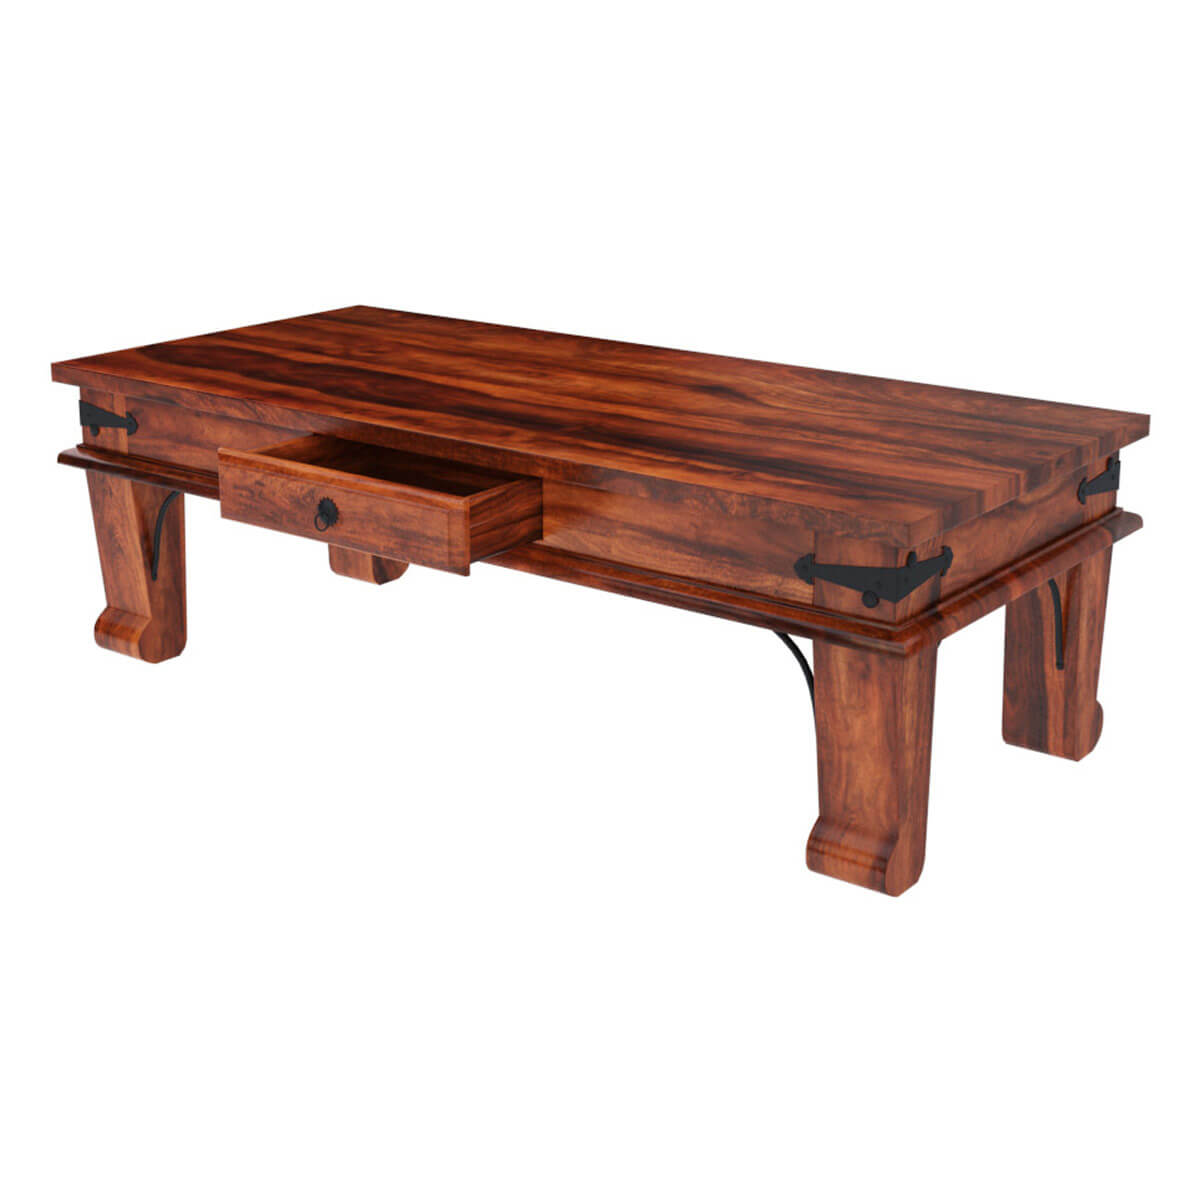 Rustic Solid Wood Rectangular One Drawer Urban Shaker Coffee Table